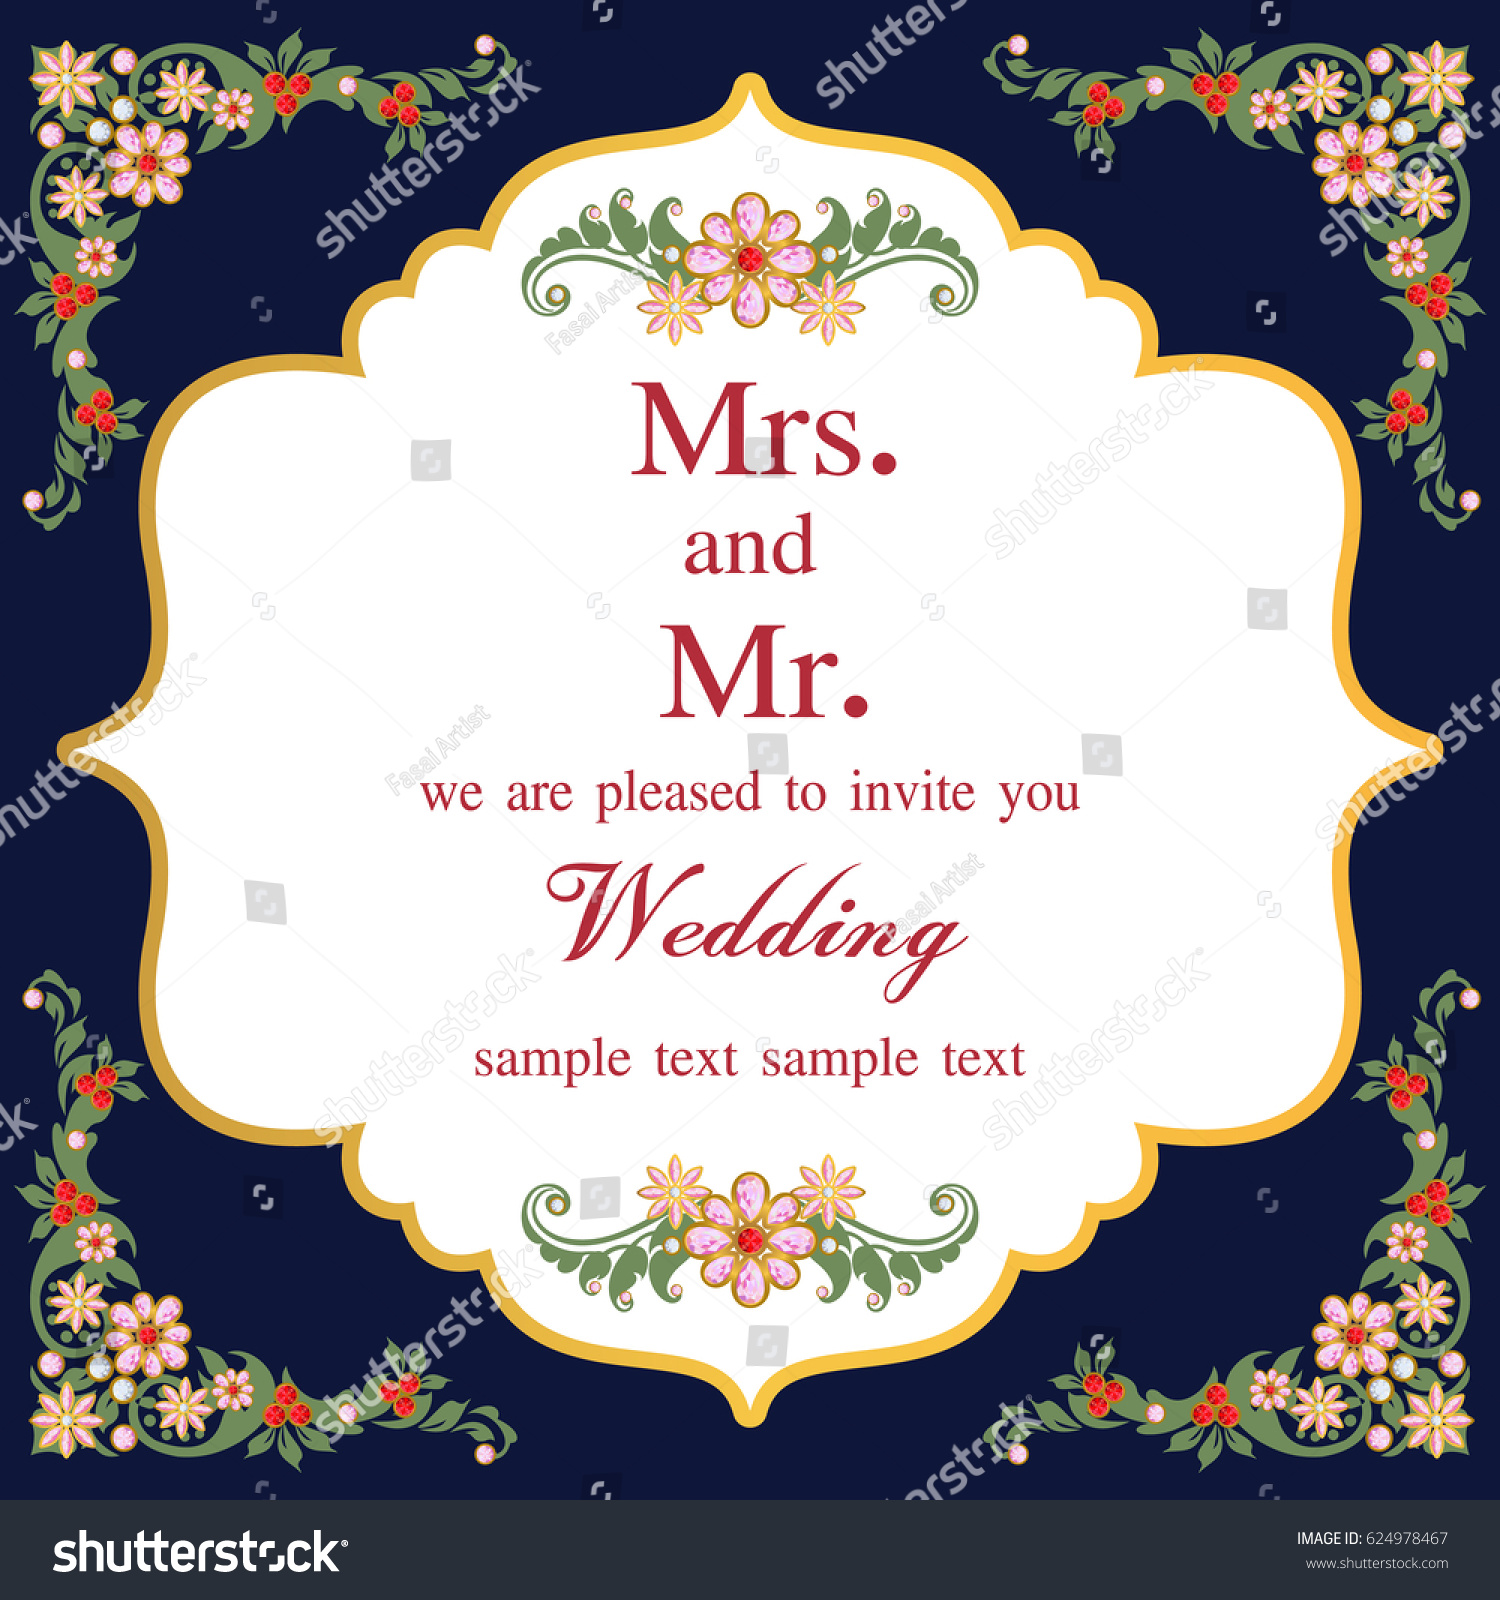 Vintage Invitation Wedding Cards Template Frame Stock Vector ...